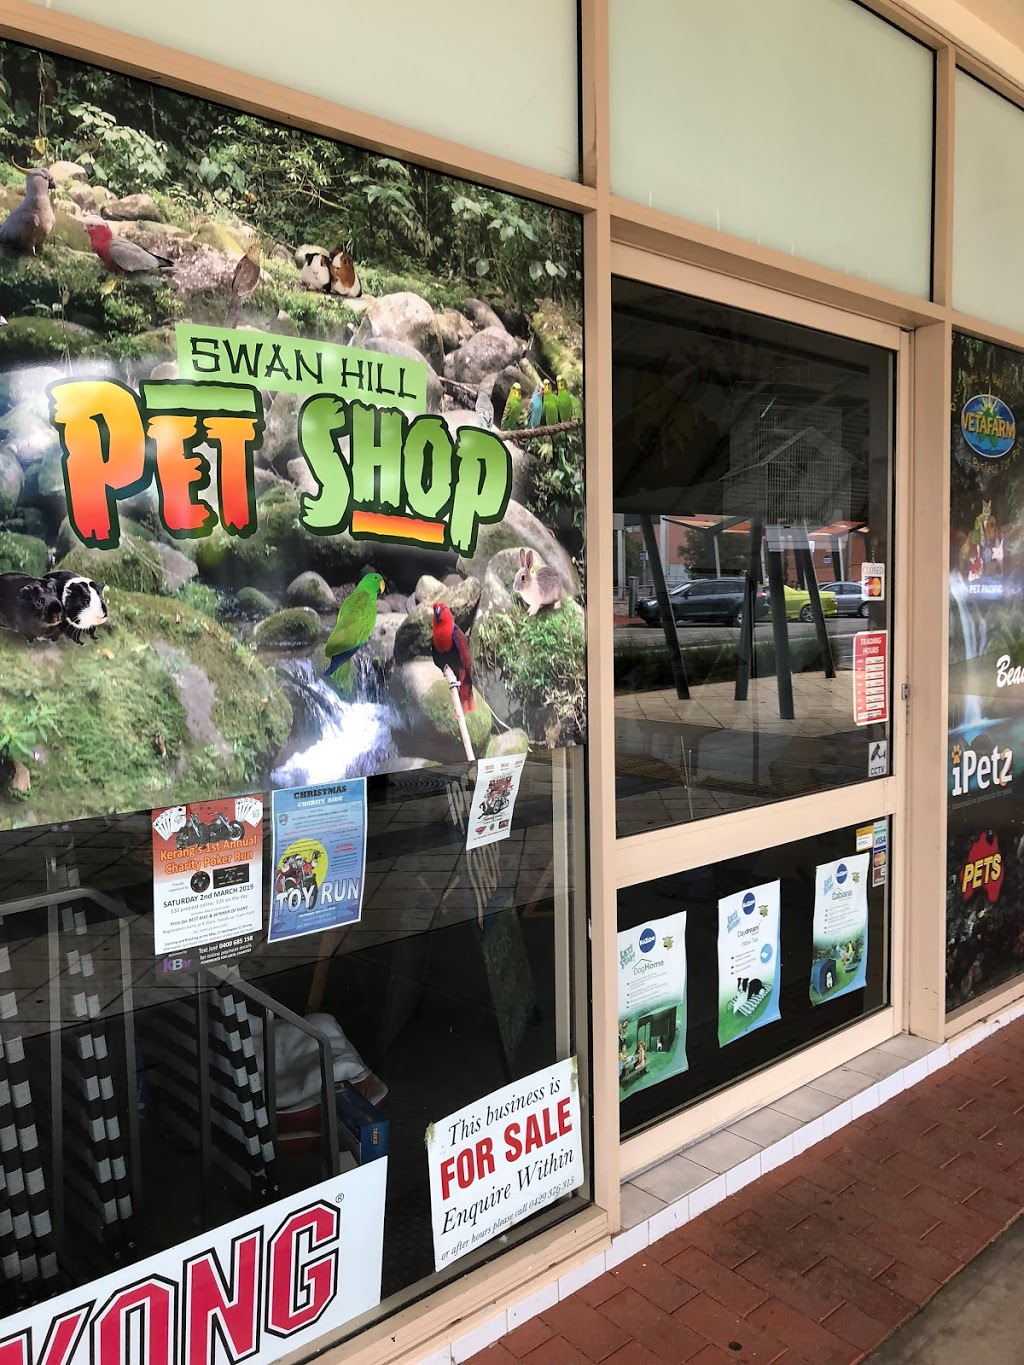 Swan hill pet shop | pet store | 109 Campbell St, Swan Hill VIC 3585, Australia | 0350323002 OR +61 3 5032 3002